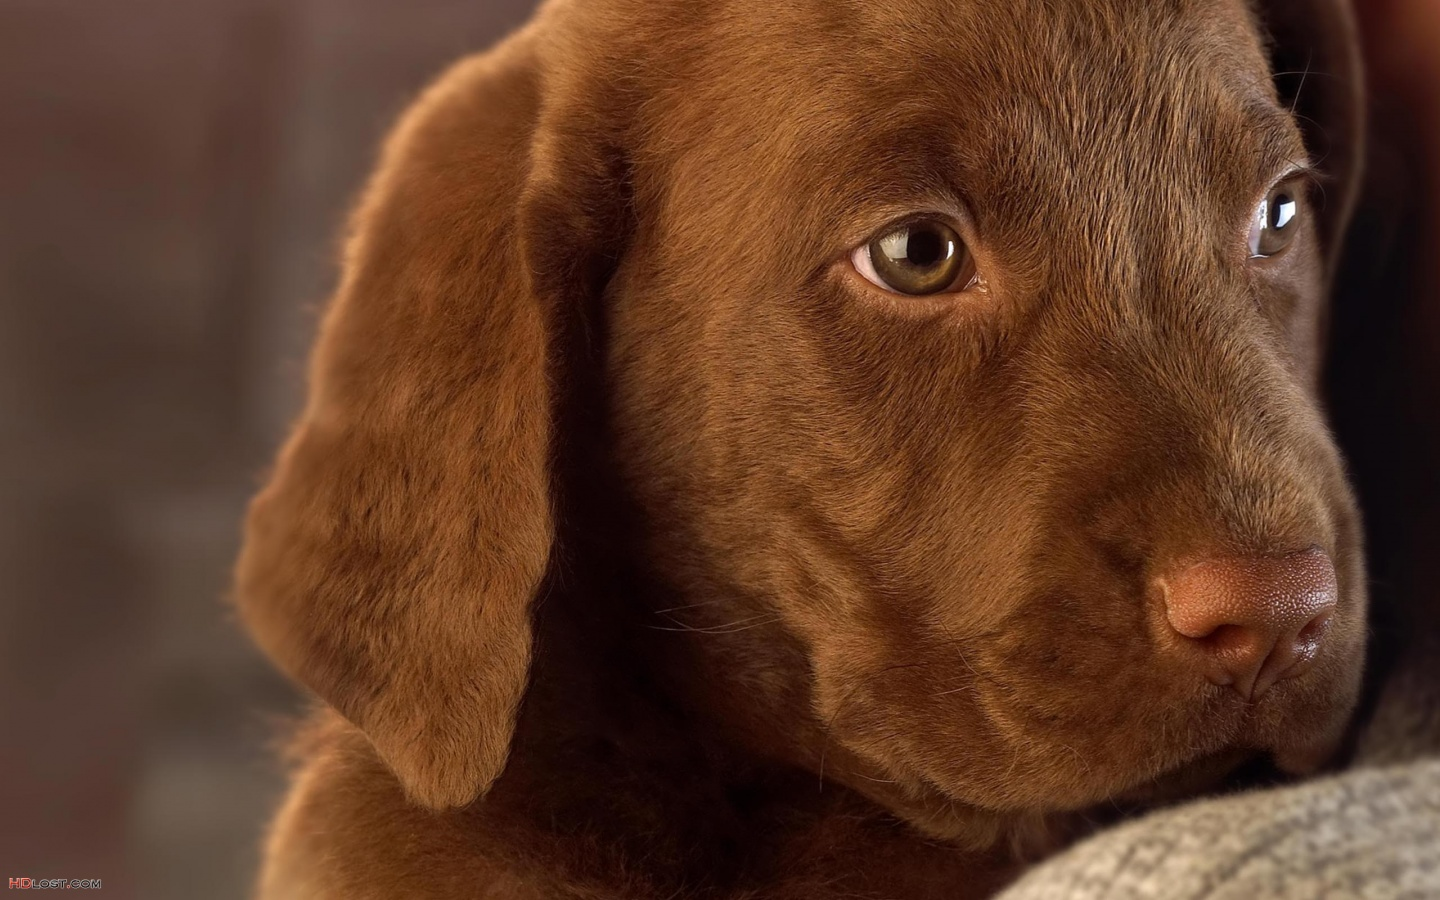 Pictures Chocolate Labrador Puppy 1440x900 pixel Size 392573 Octets 1440x900